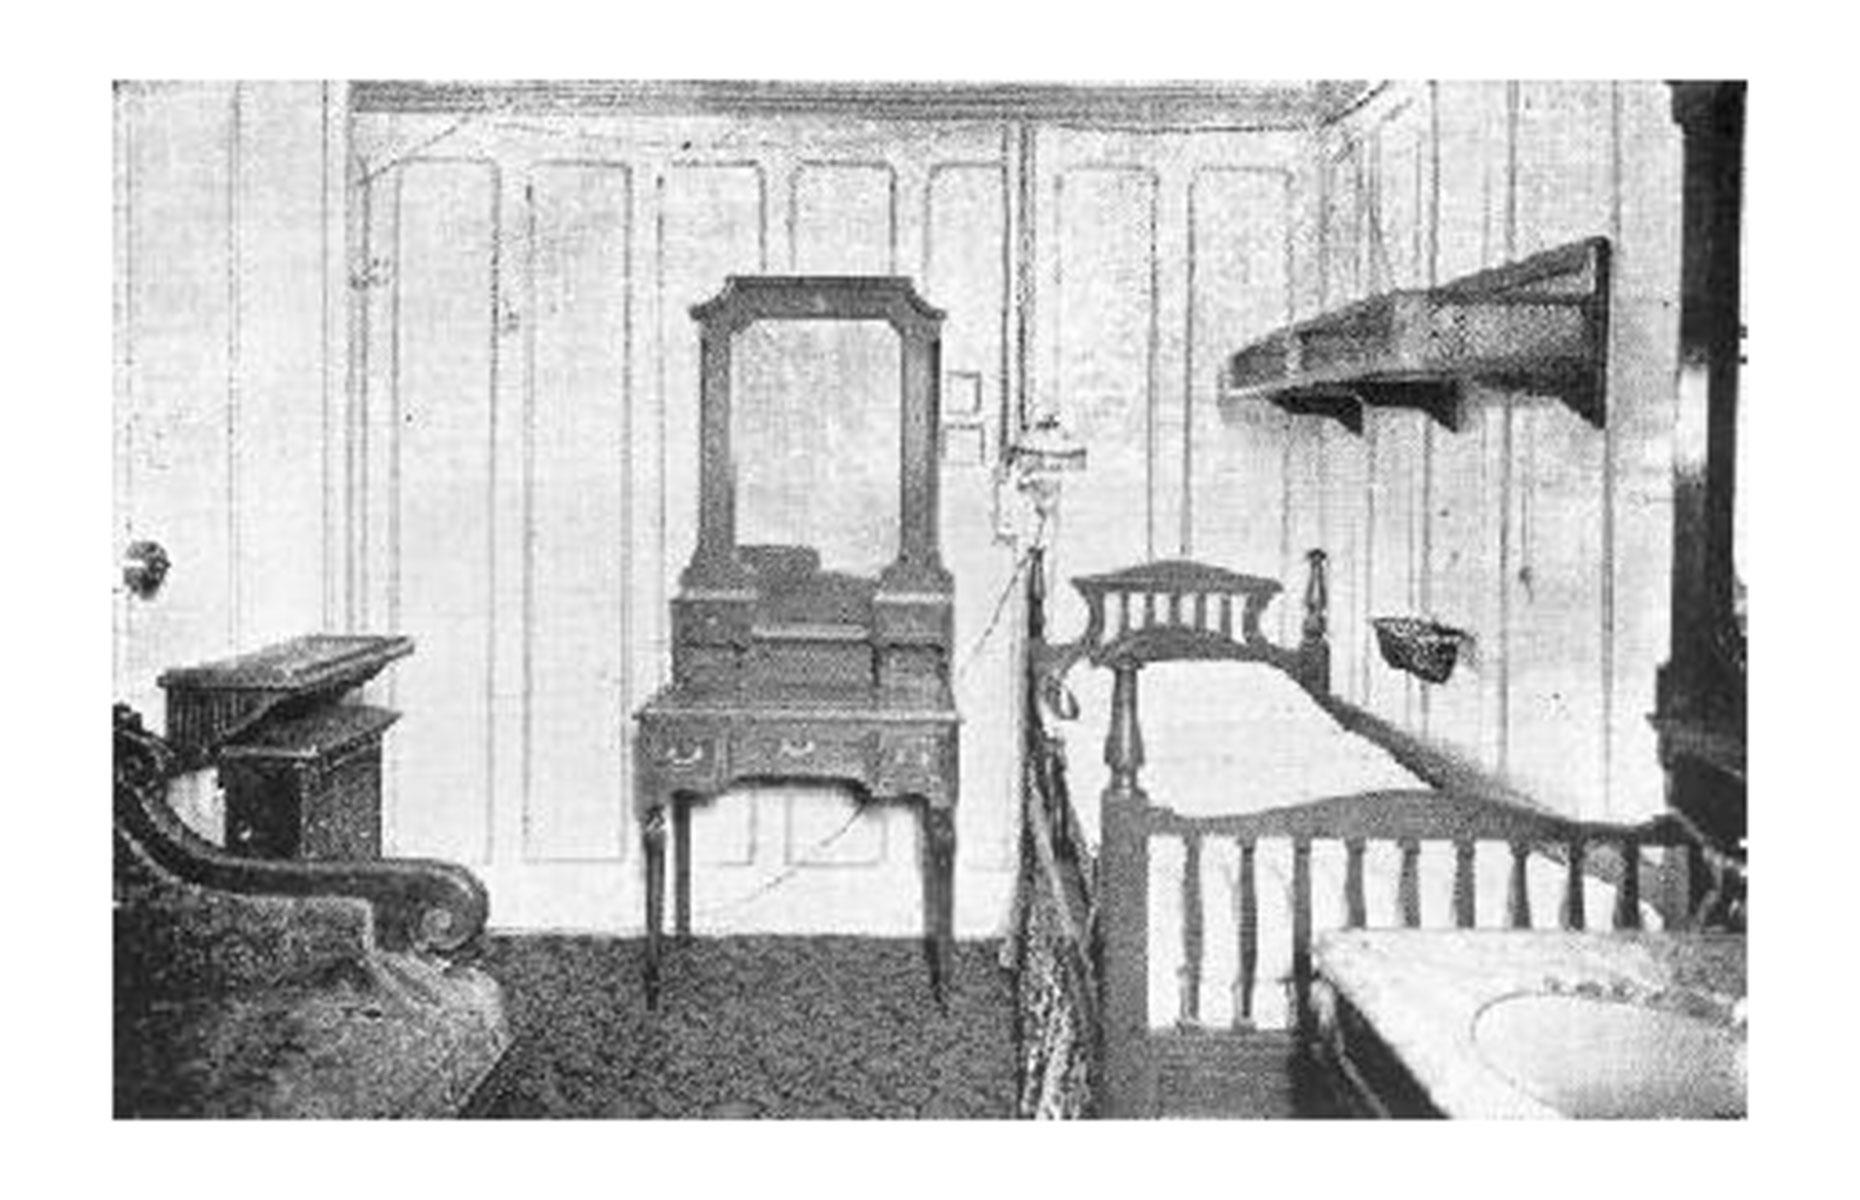 Slide 20 of 46: First-class cabins were not furnished identically, but decorated in different styles including Queen Anne and Louis XV. And not every cabin in first class was as luxurious as you might think. This is stateroom B-21 which came complete with a single bed and sink. Some first-class staterooms even had shared bathrooms.